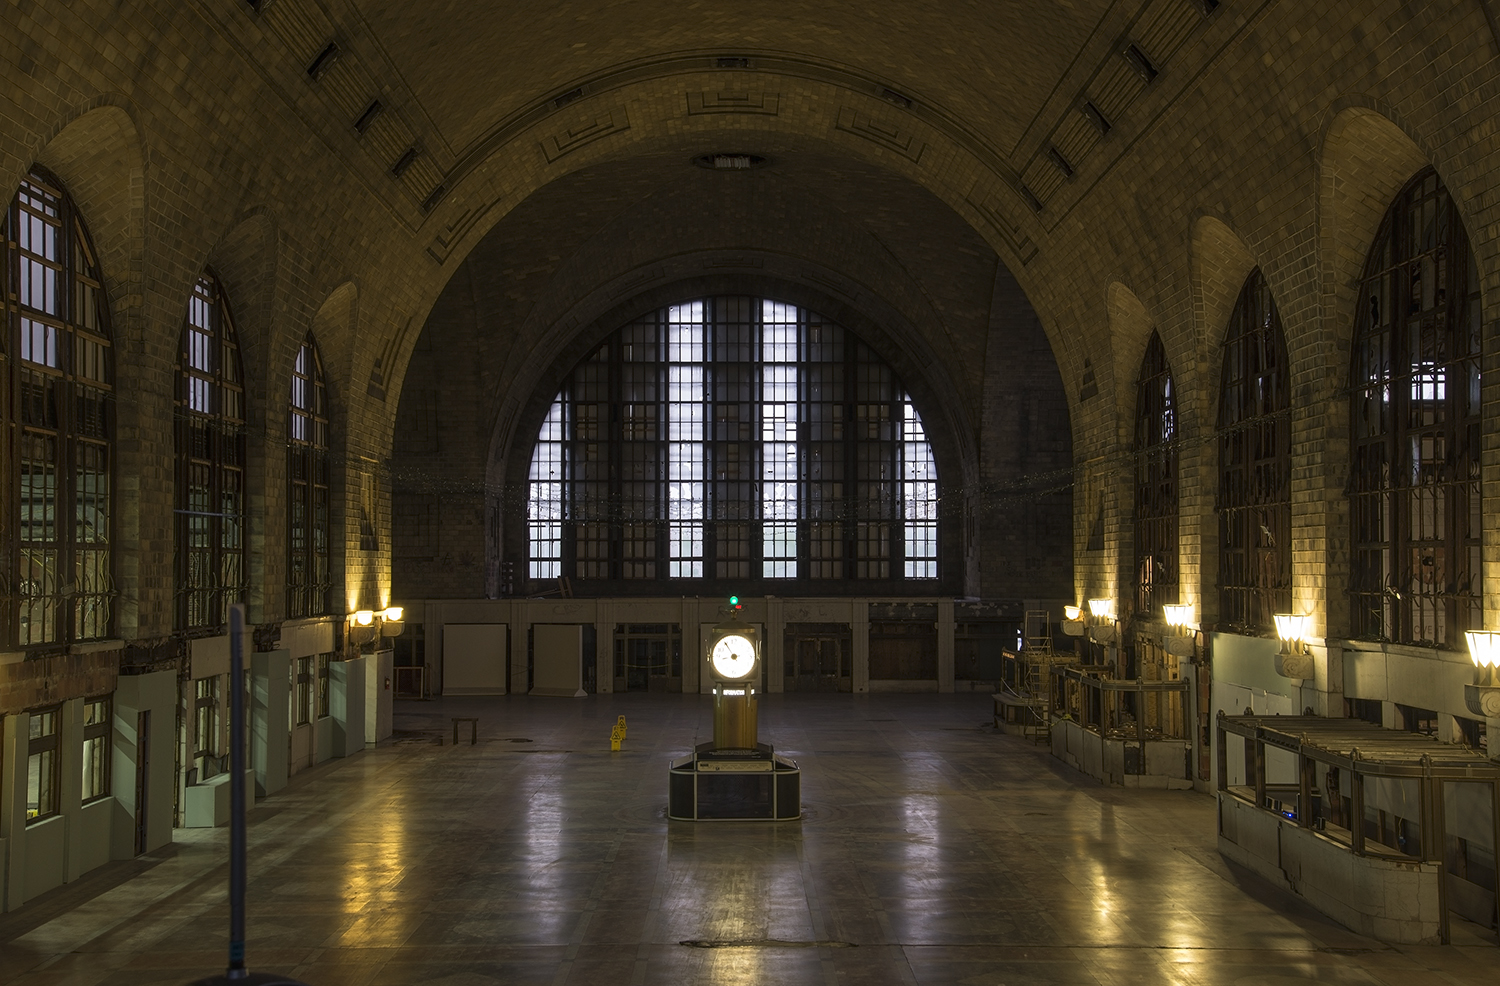 Buffalo Central Terminal. Fuente: stanton.photography